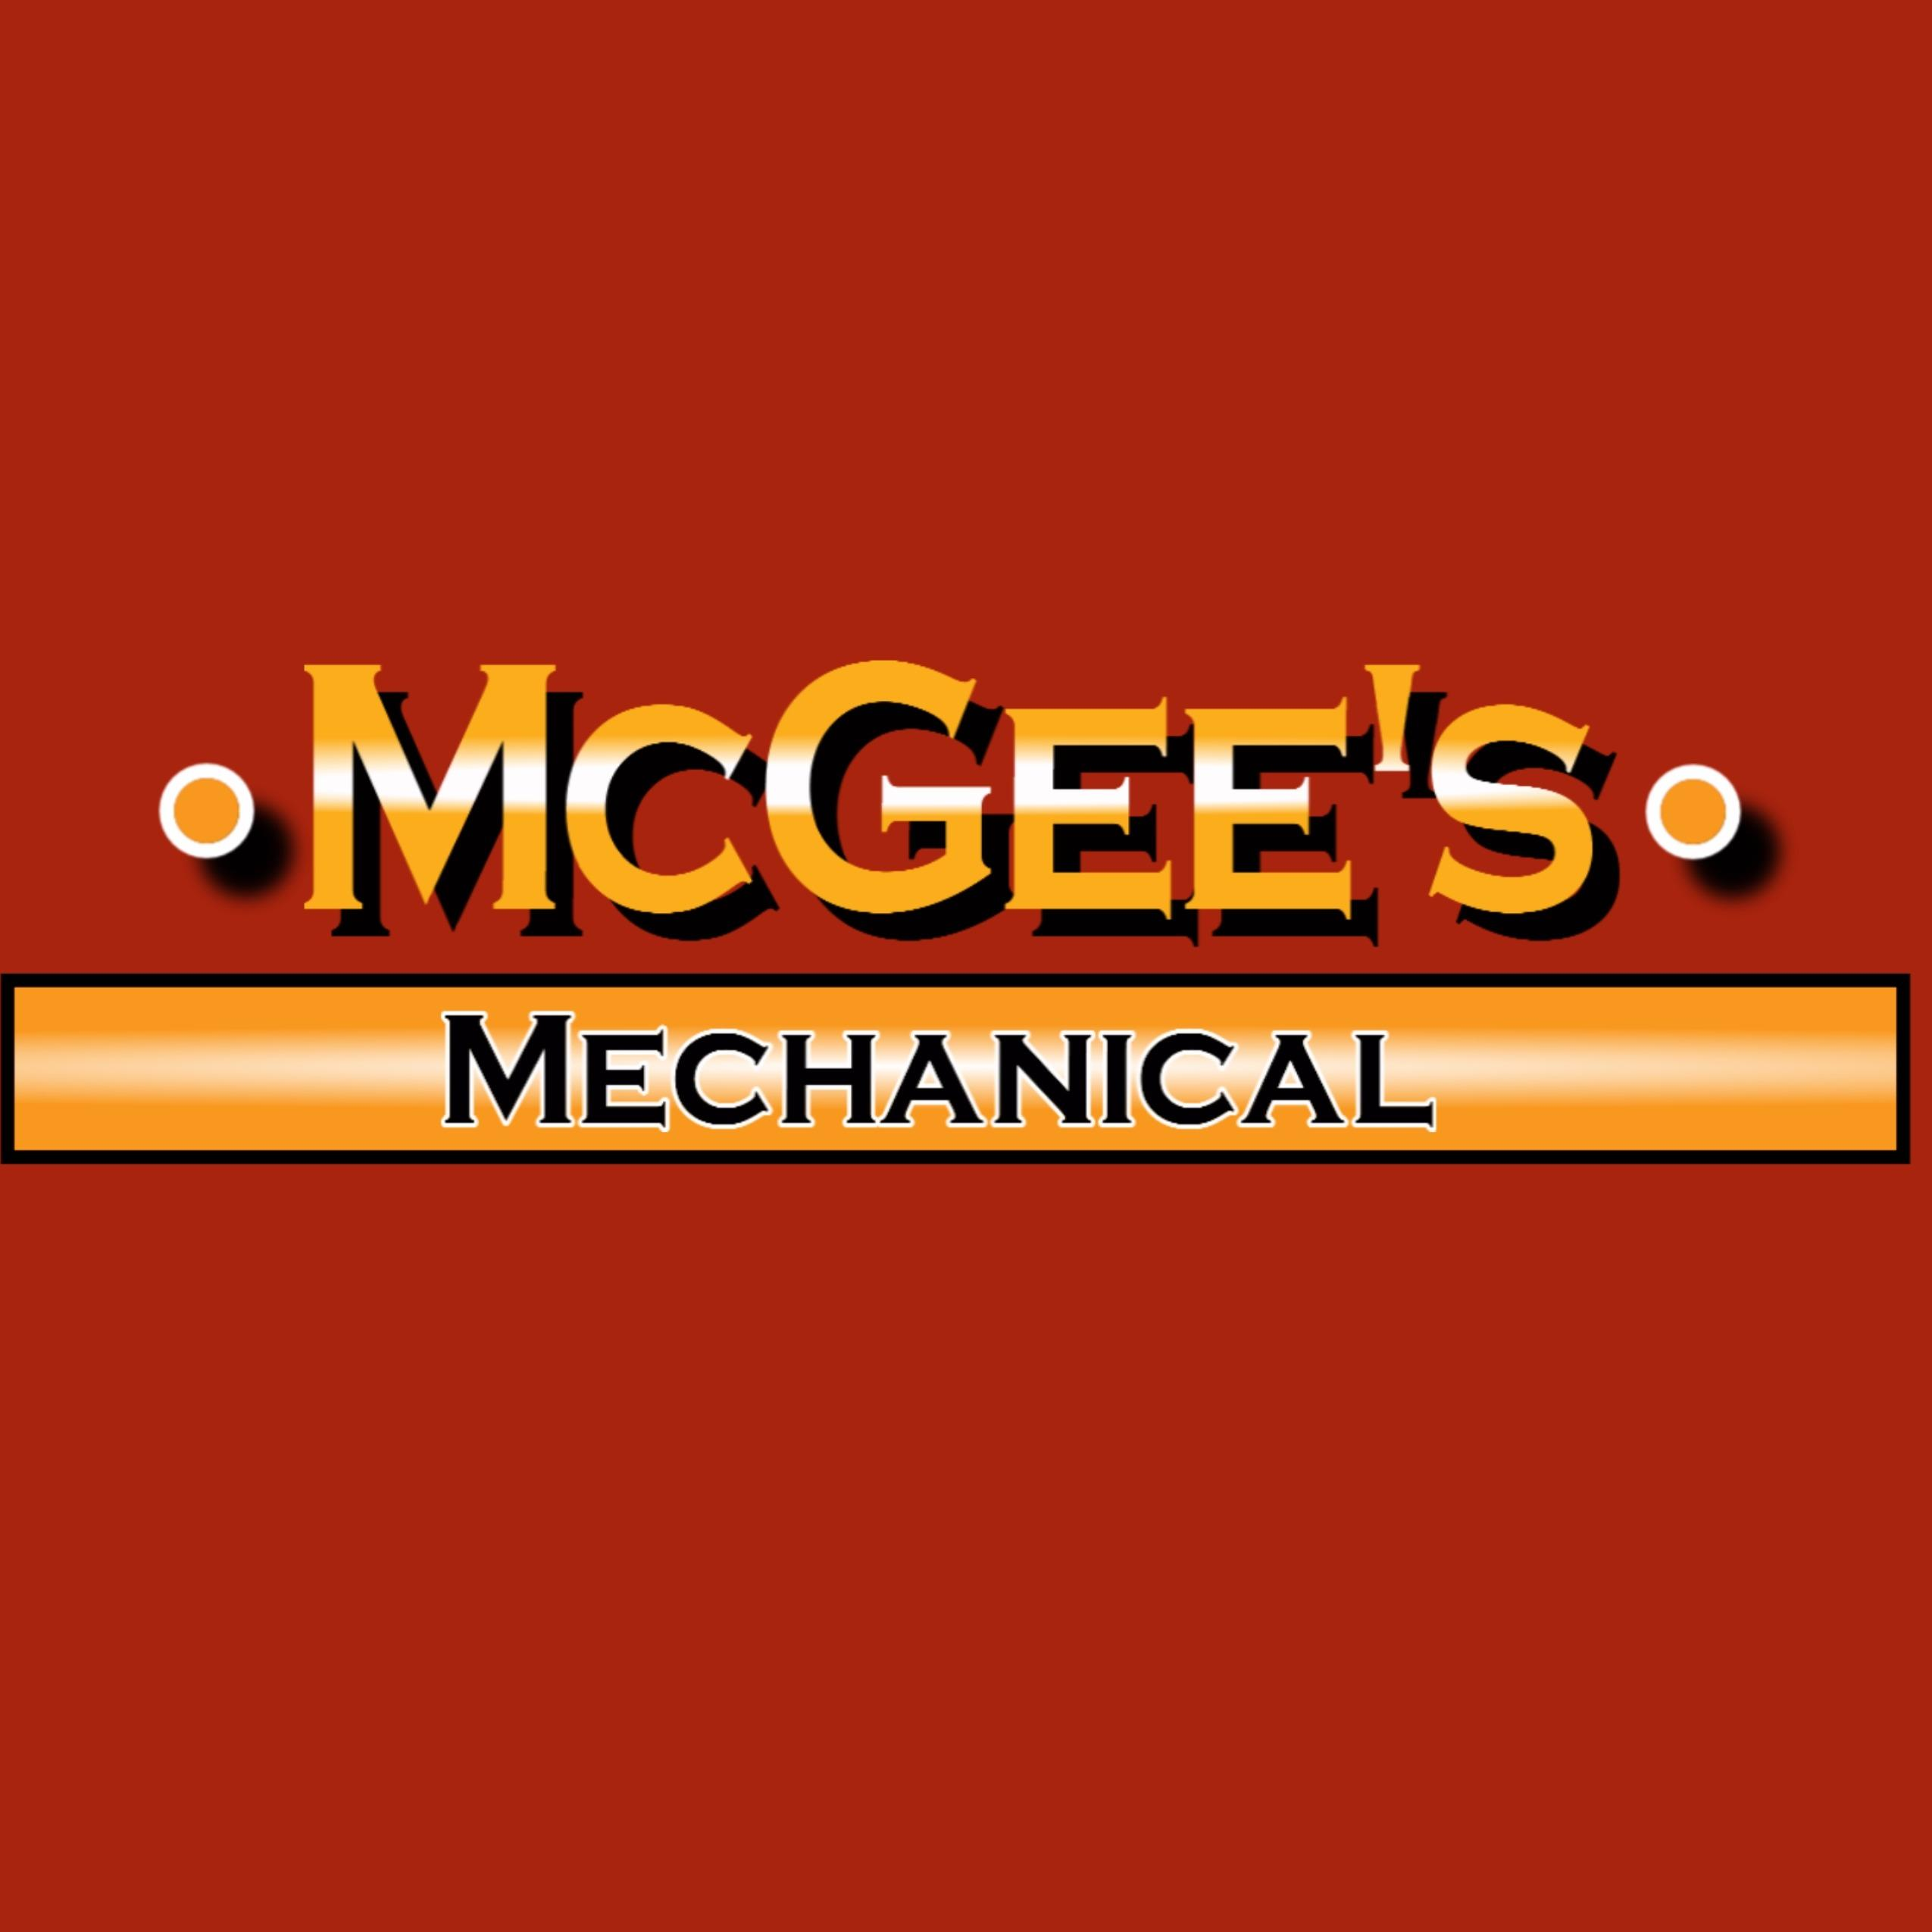 Mc Gee's Mechanical image 5